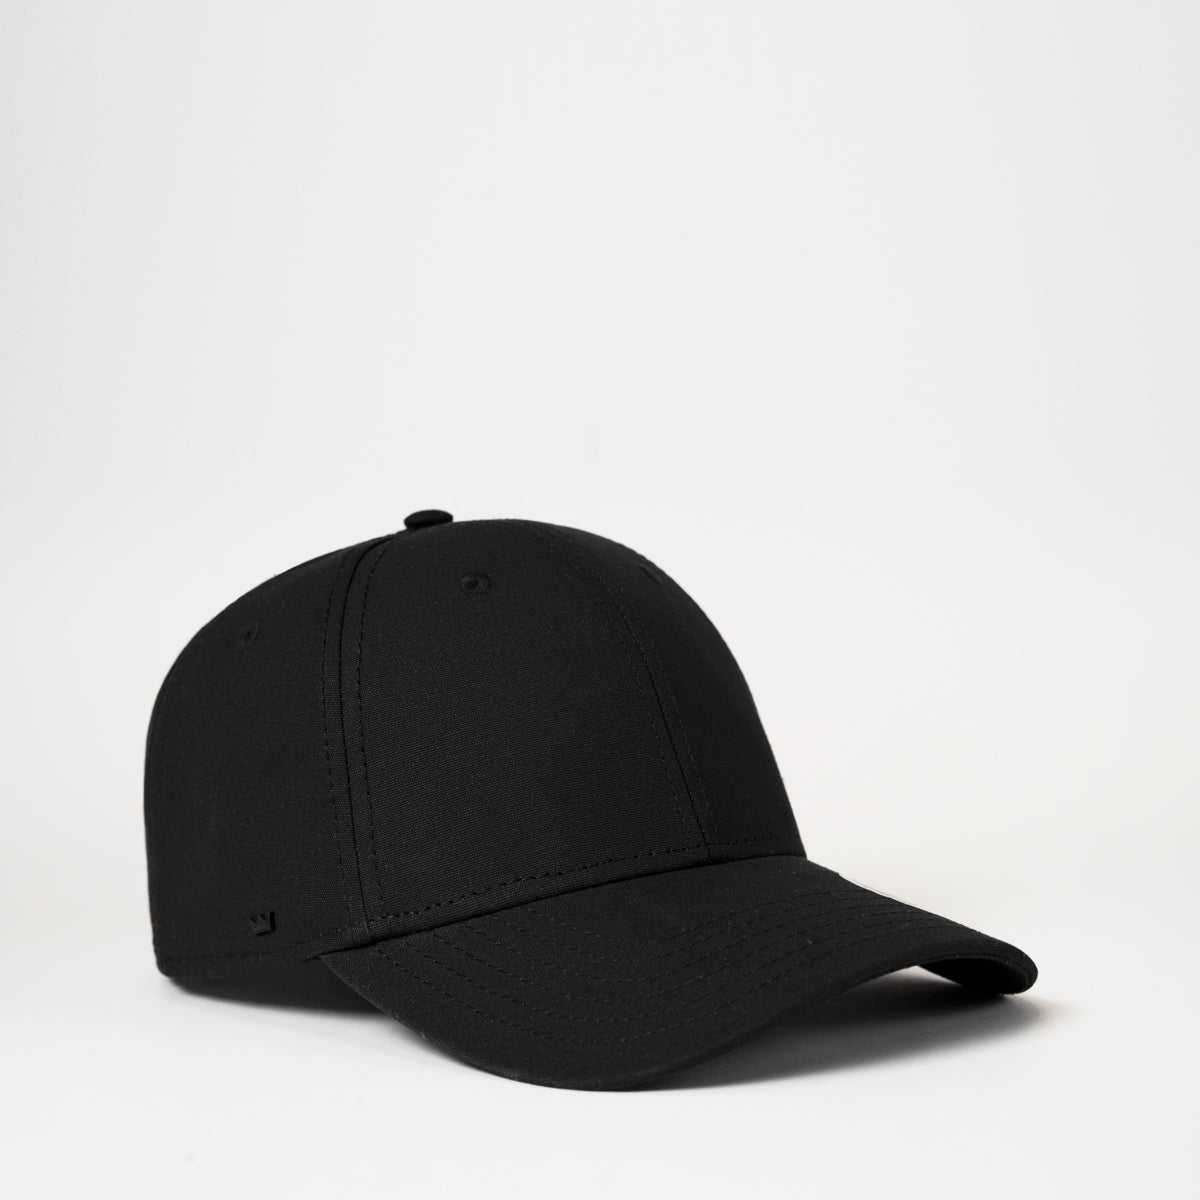 UFlex 6 Panel Recycled Cotton Baseball Cap